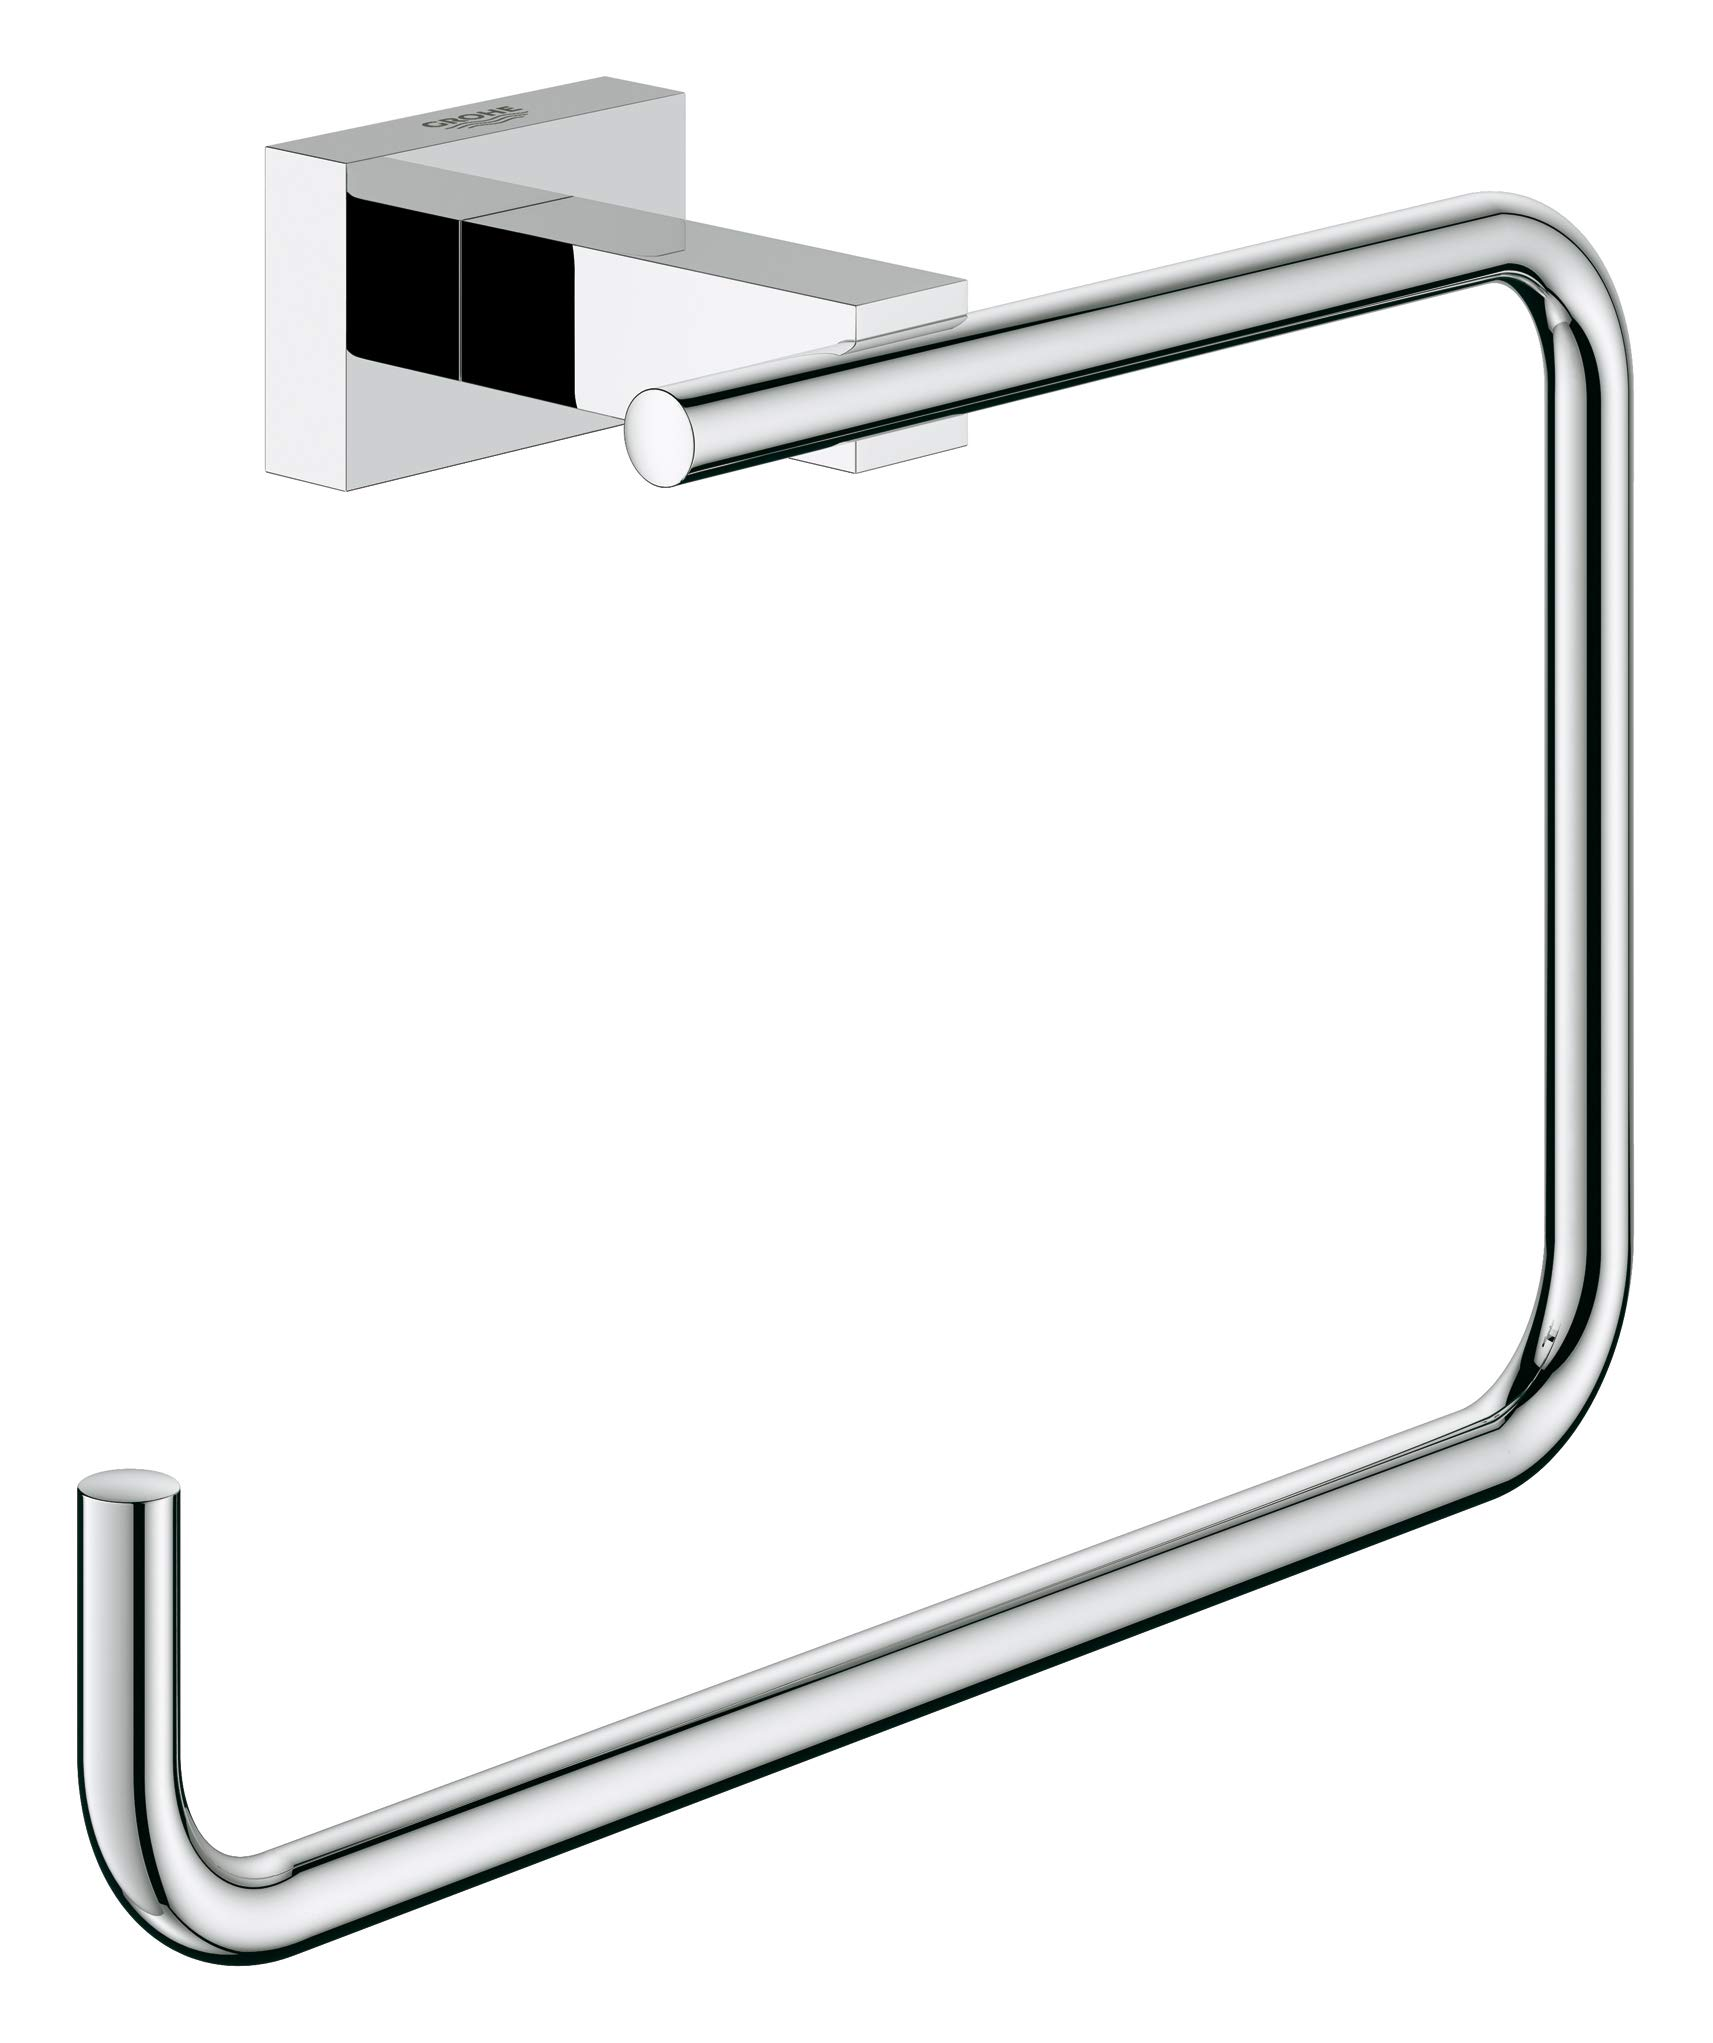 GROHE 40510001 Essentials Cube 8 In. Towel Ring, Starlight Chrome by GROHE